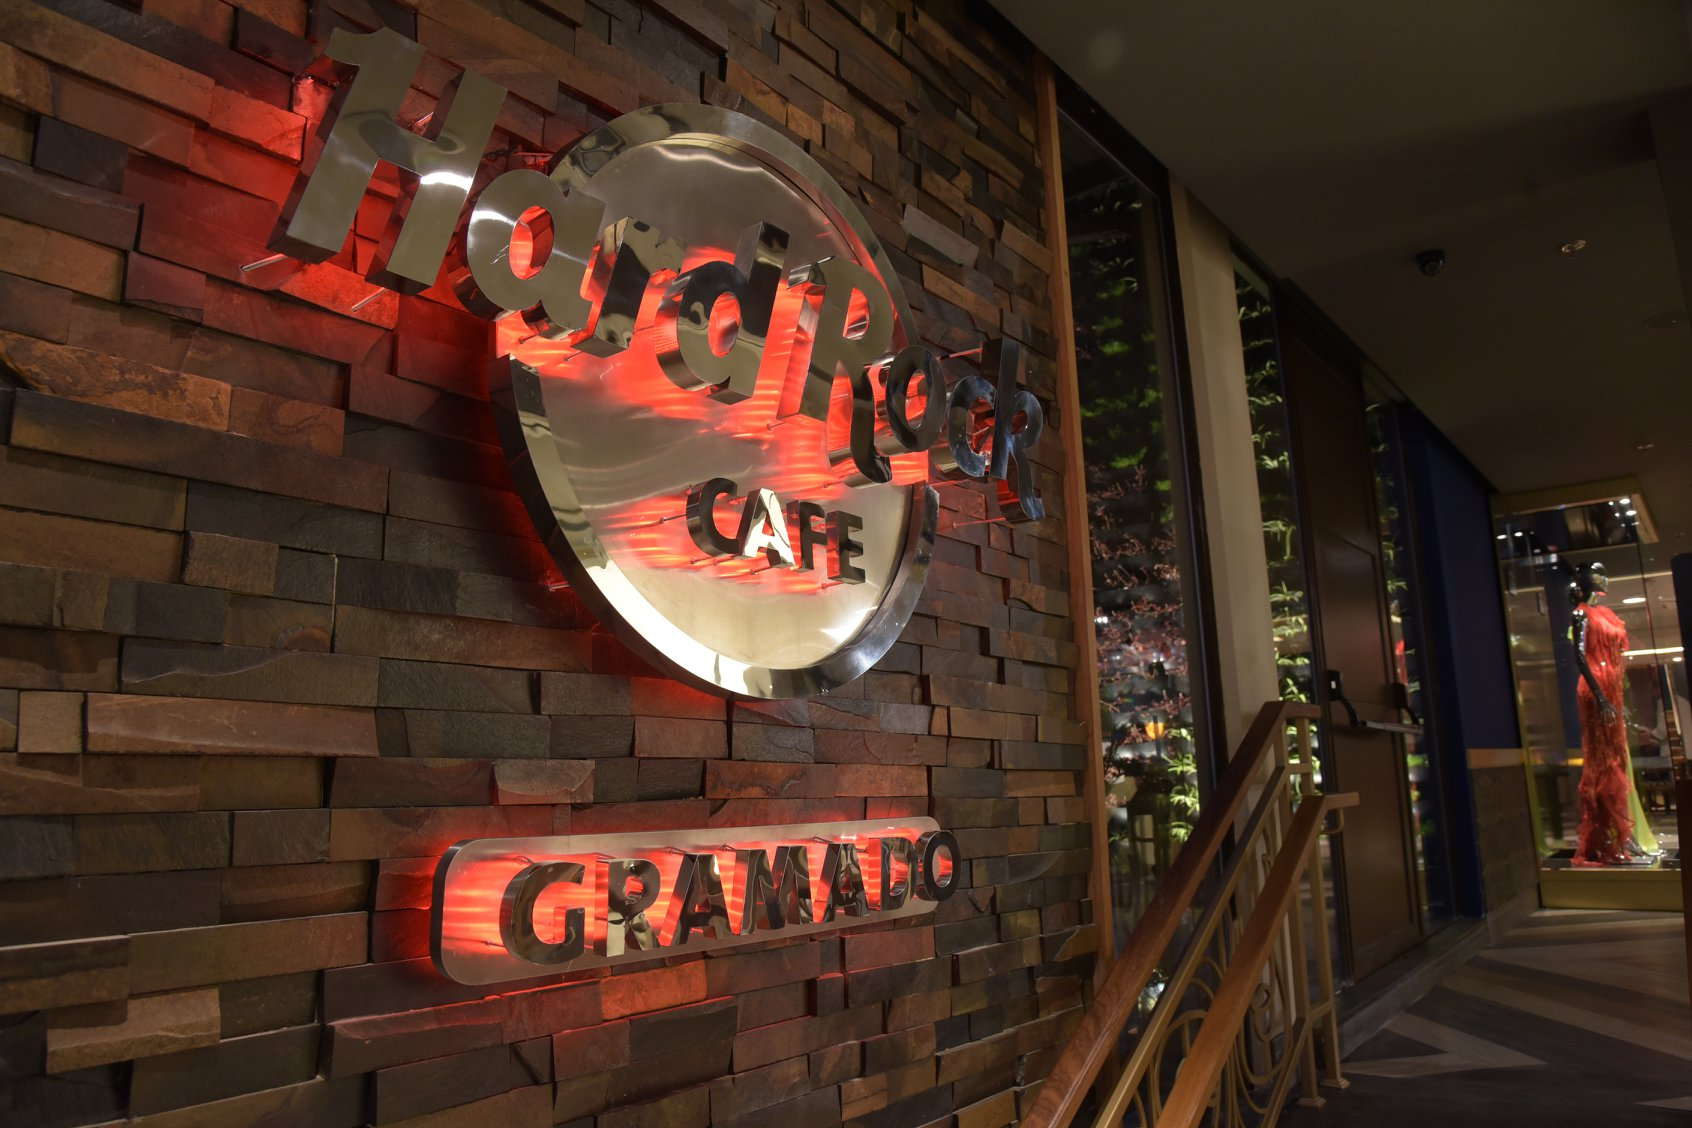 Hard Rock Cafe Gramado